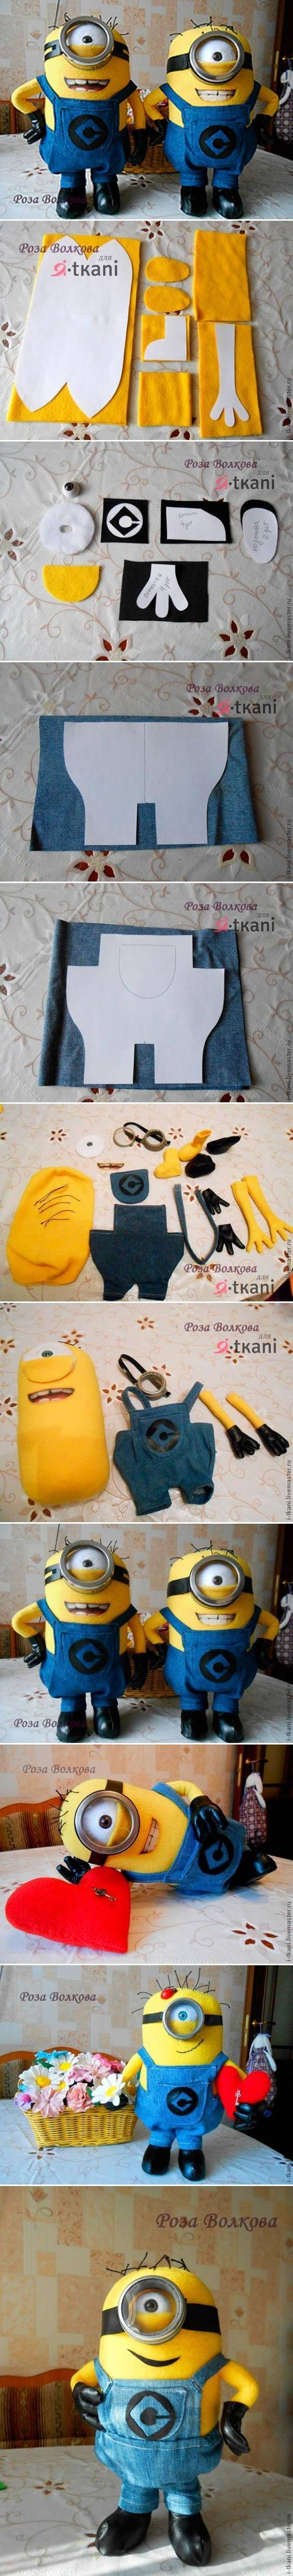 DIY Minion Dolls: